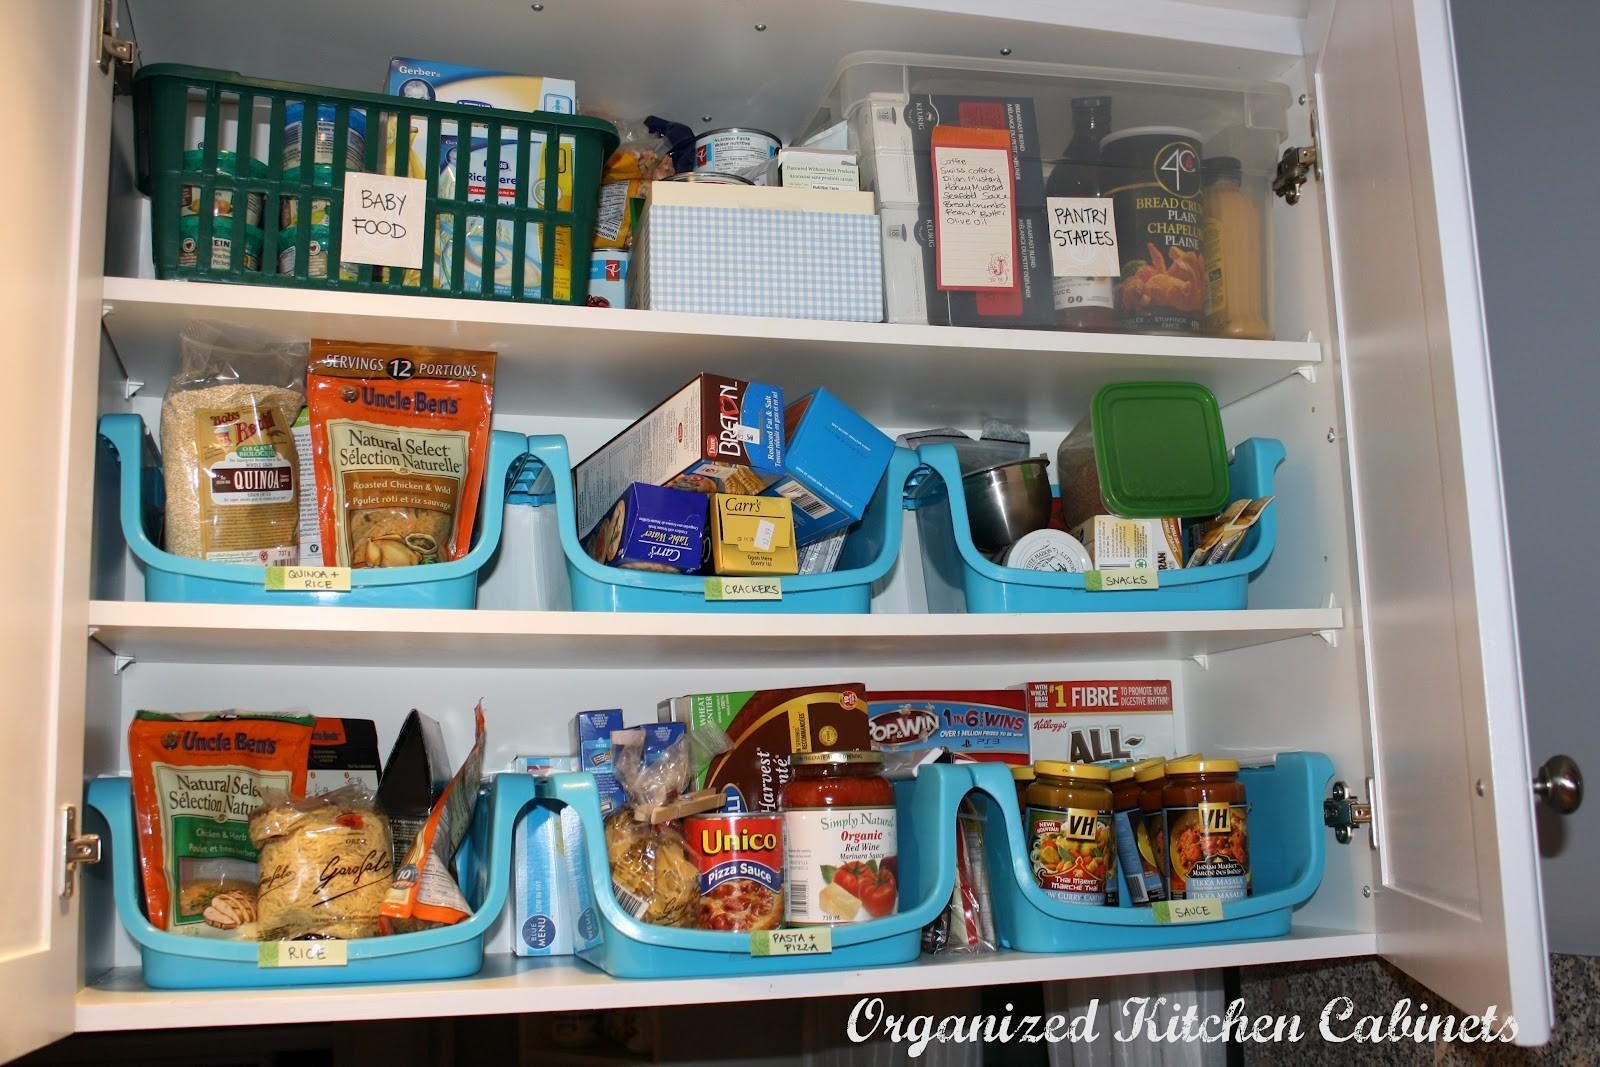 Simcoe Street Organizing Kitchen Cupboards Food Storage